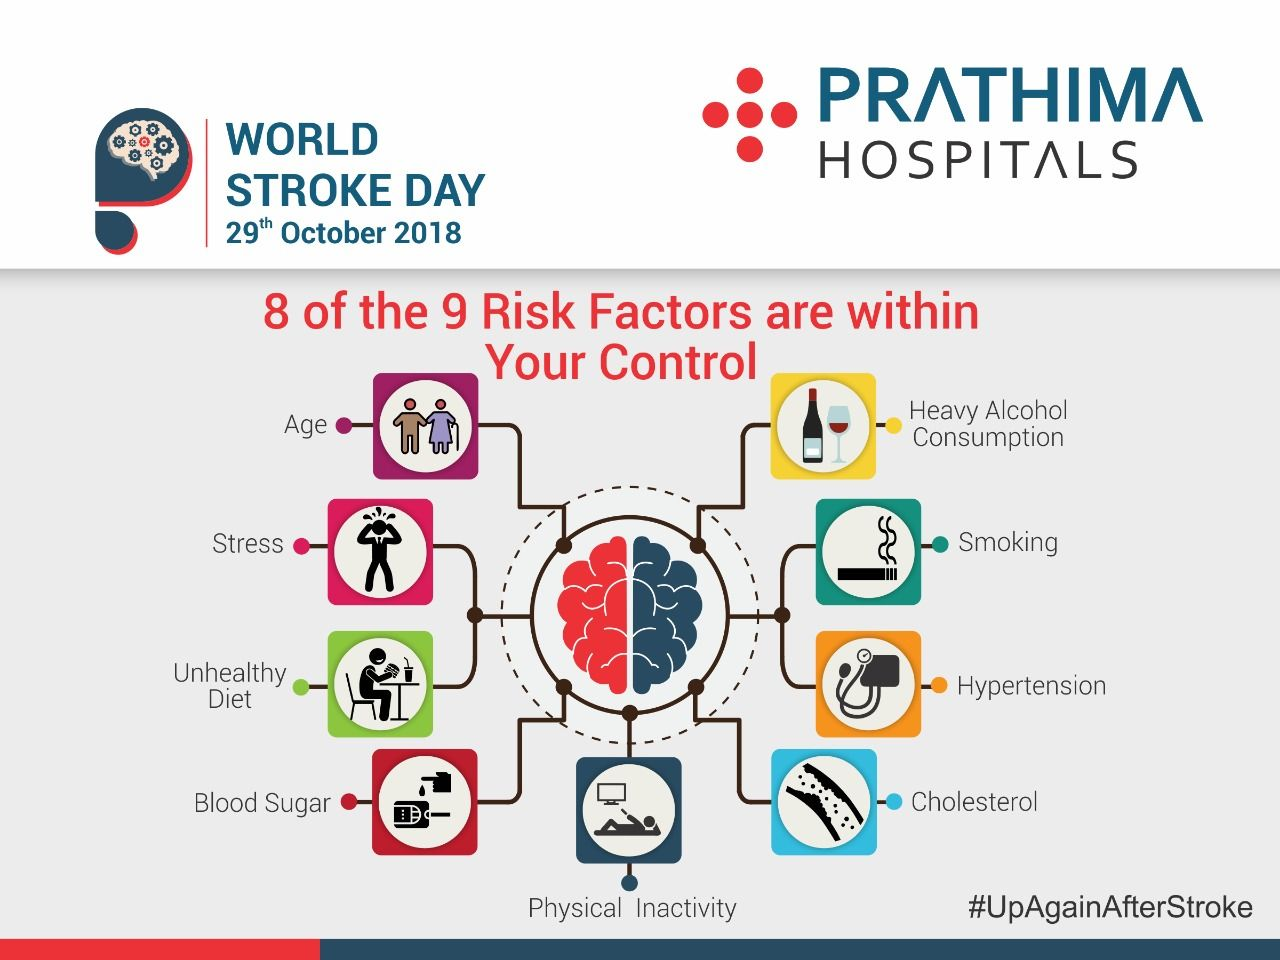 Prathimahospitals Worldstrokeday 2018 Suffering A Stroke Can Cause Many Significant And Challenging Mental A Best Hospitals World Stroke Day Physical Change